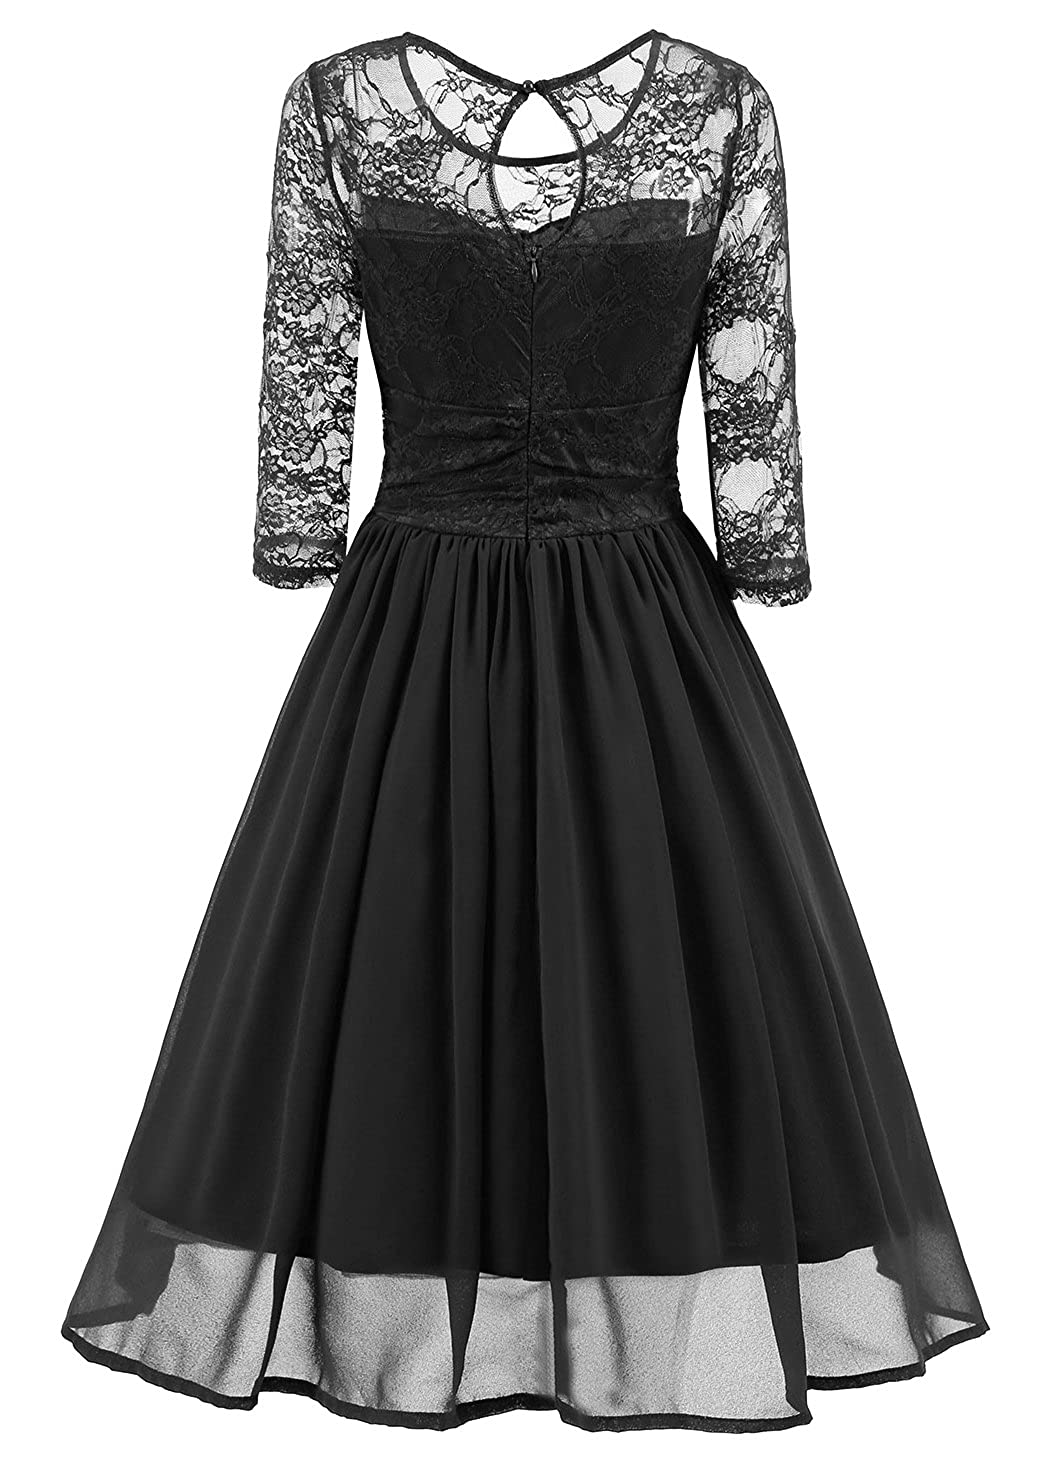 Tecrio Women s Vintage Floral Lace 3 4 Sleeve Dress Up Prom Swing Party  Dress at Amazon Women s Clothing store  b0ed5b92de14